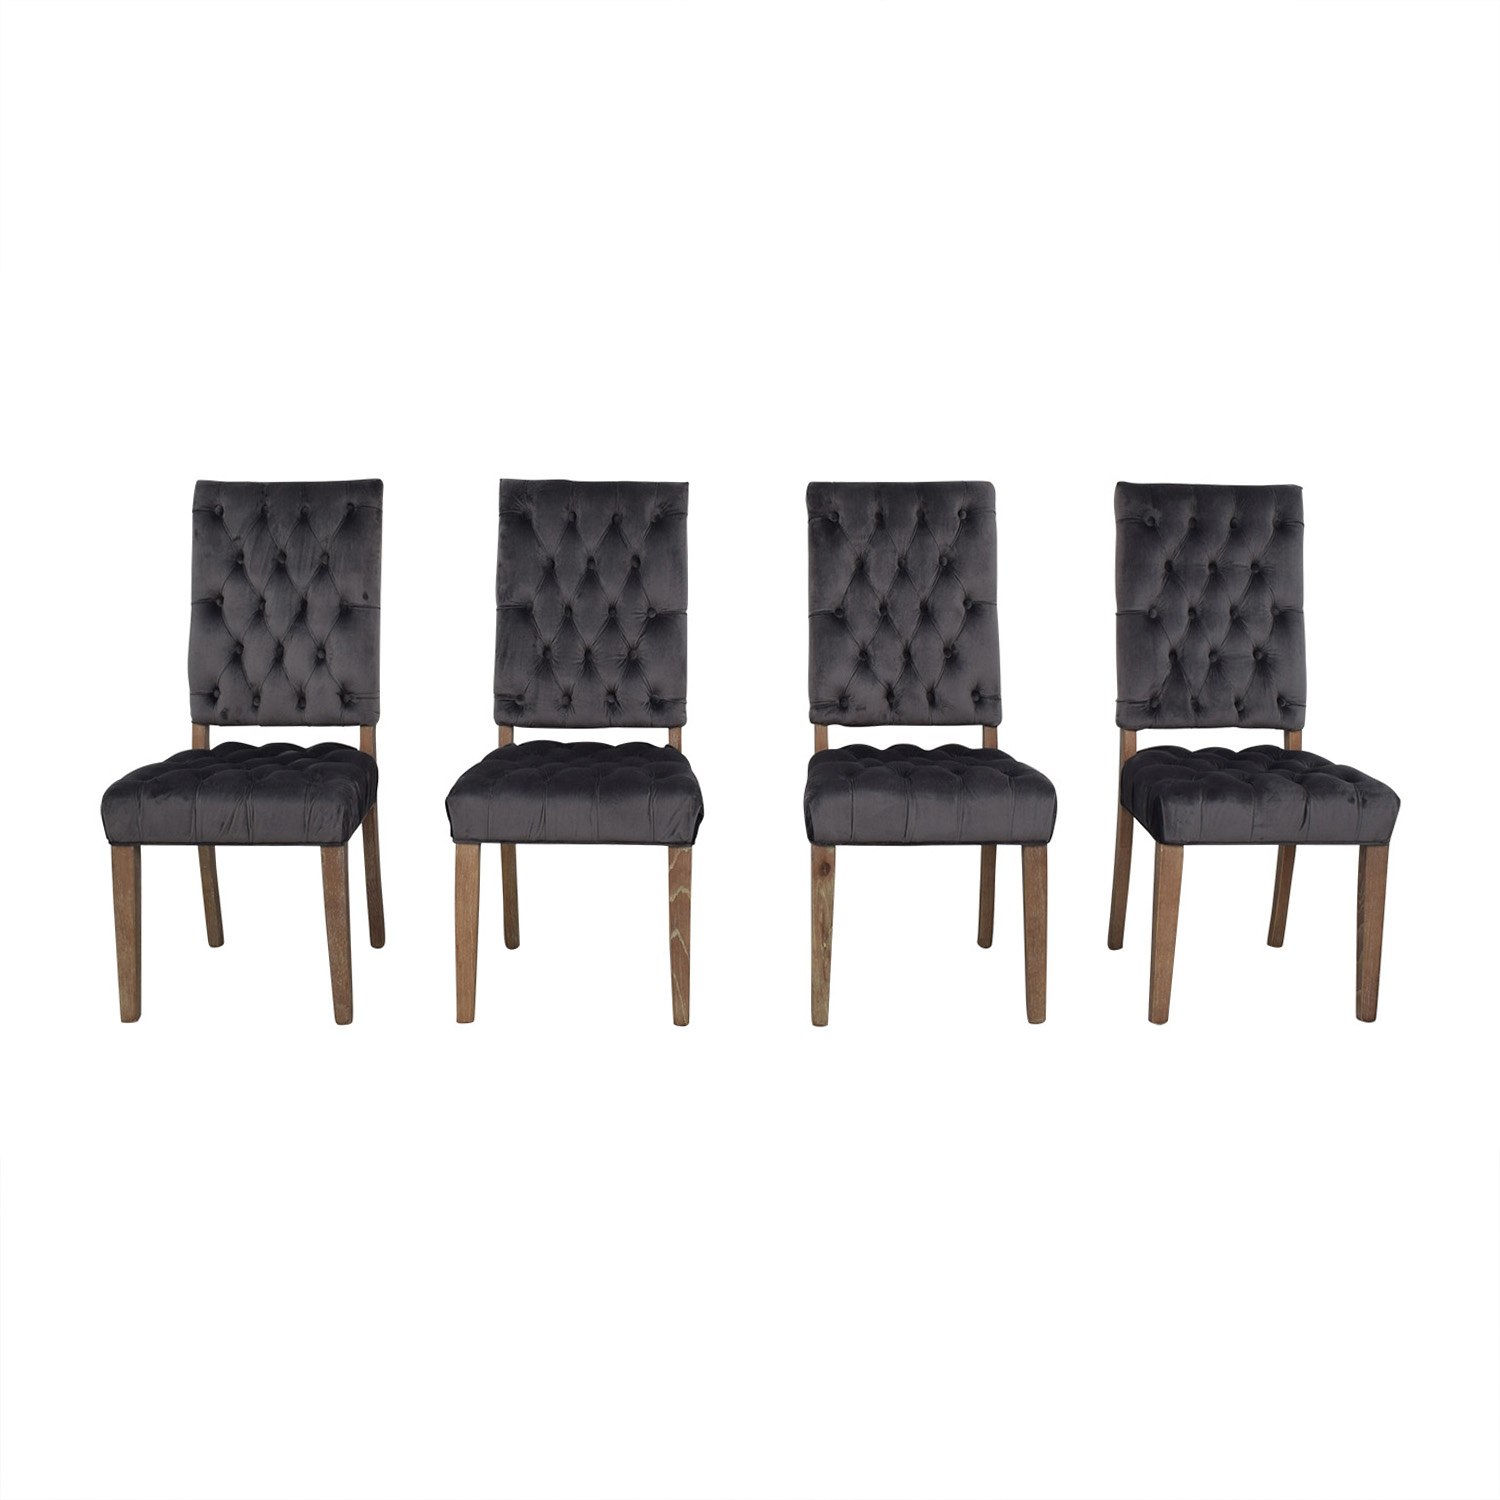 Classic Concepts Classic Concepts Onyx Tufted Dining Chairs second hand